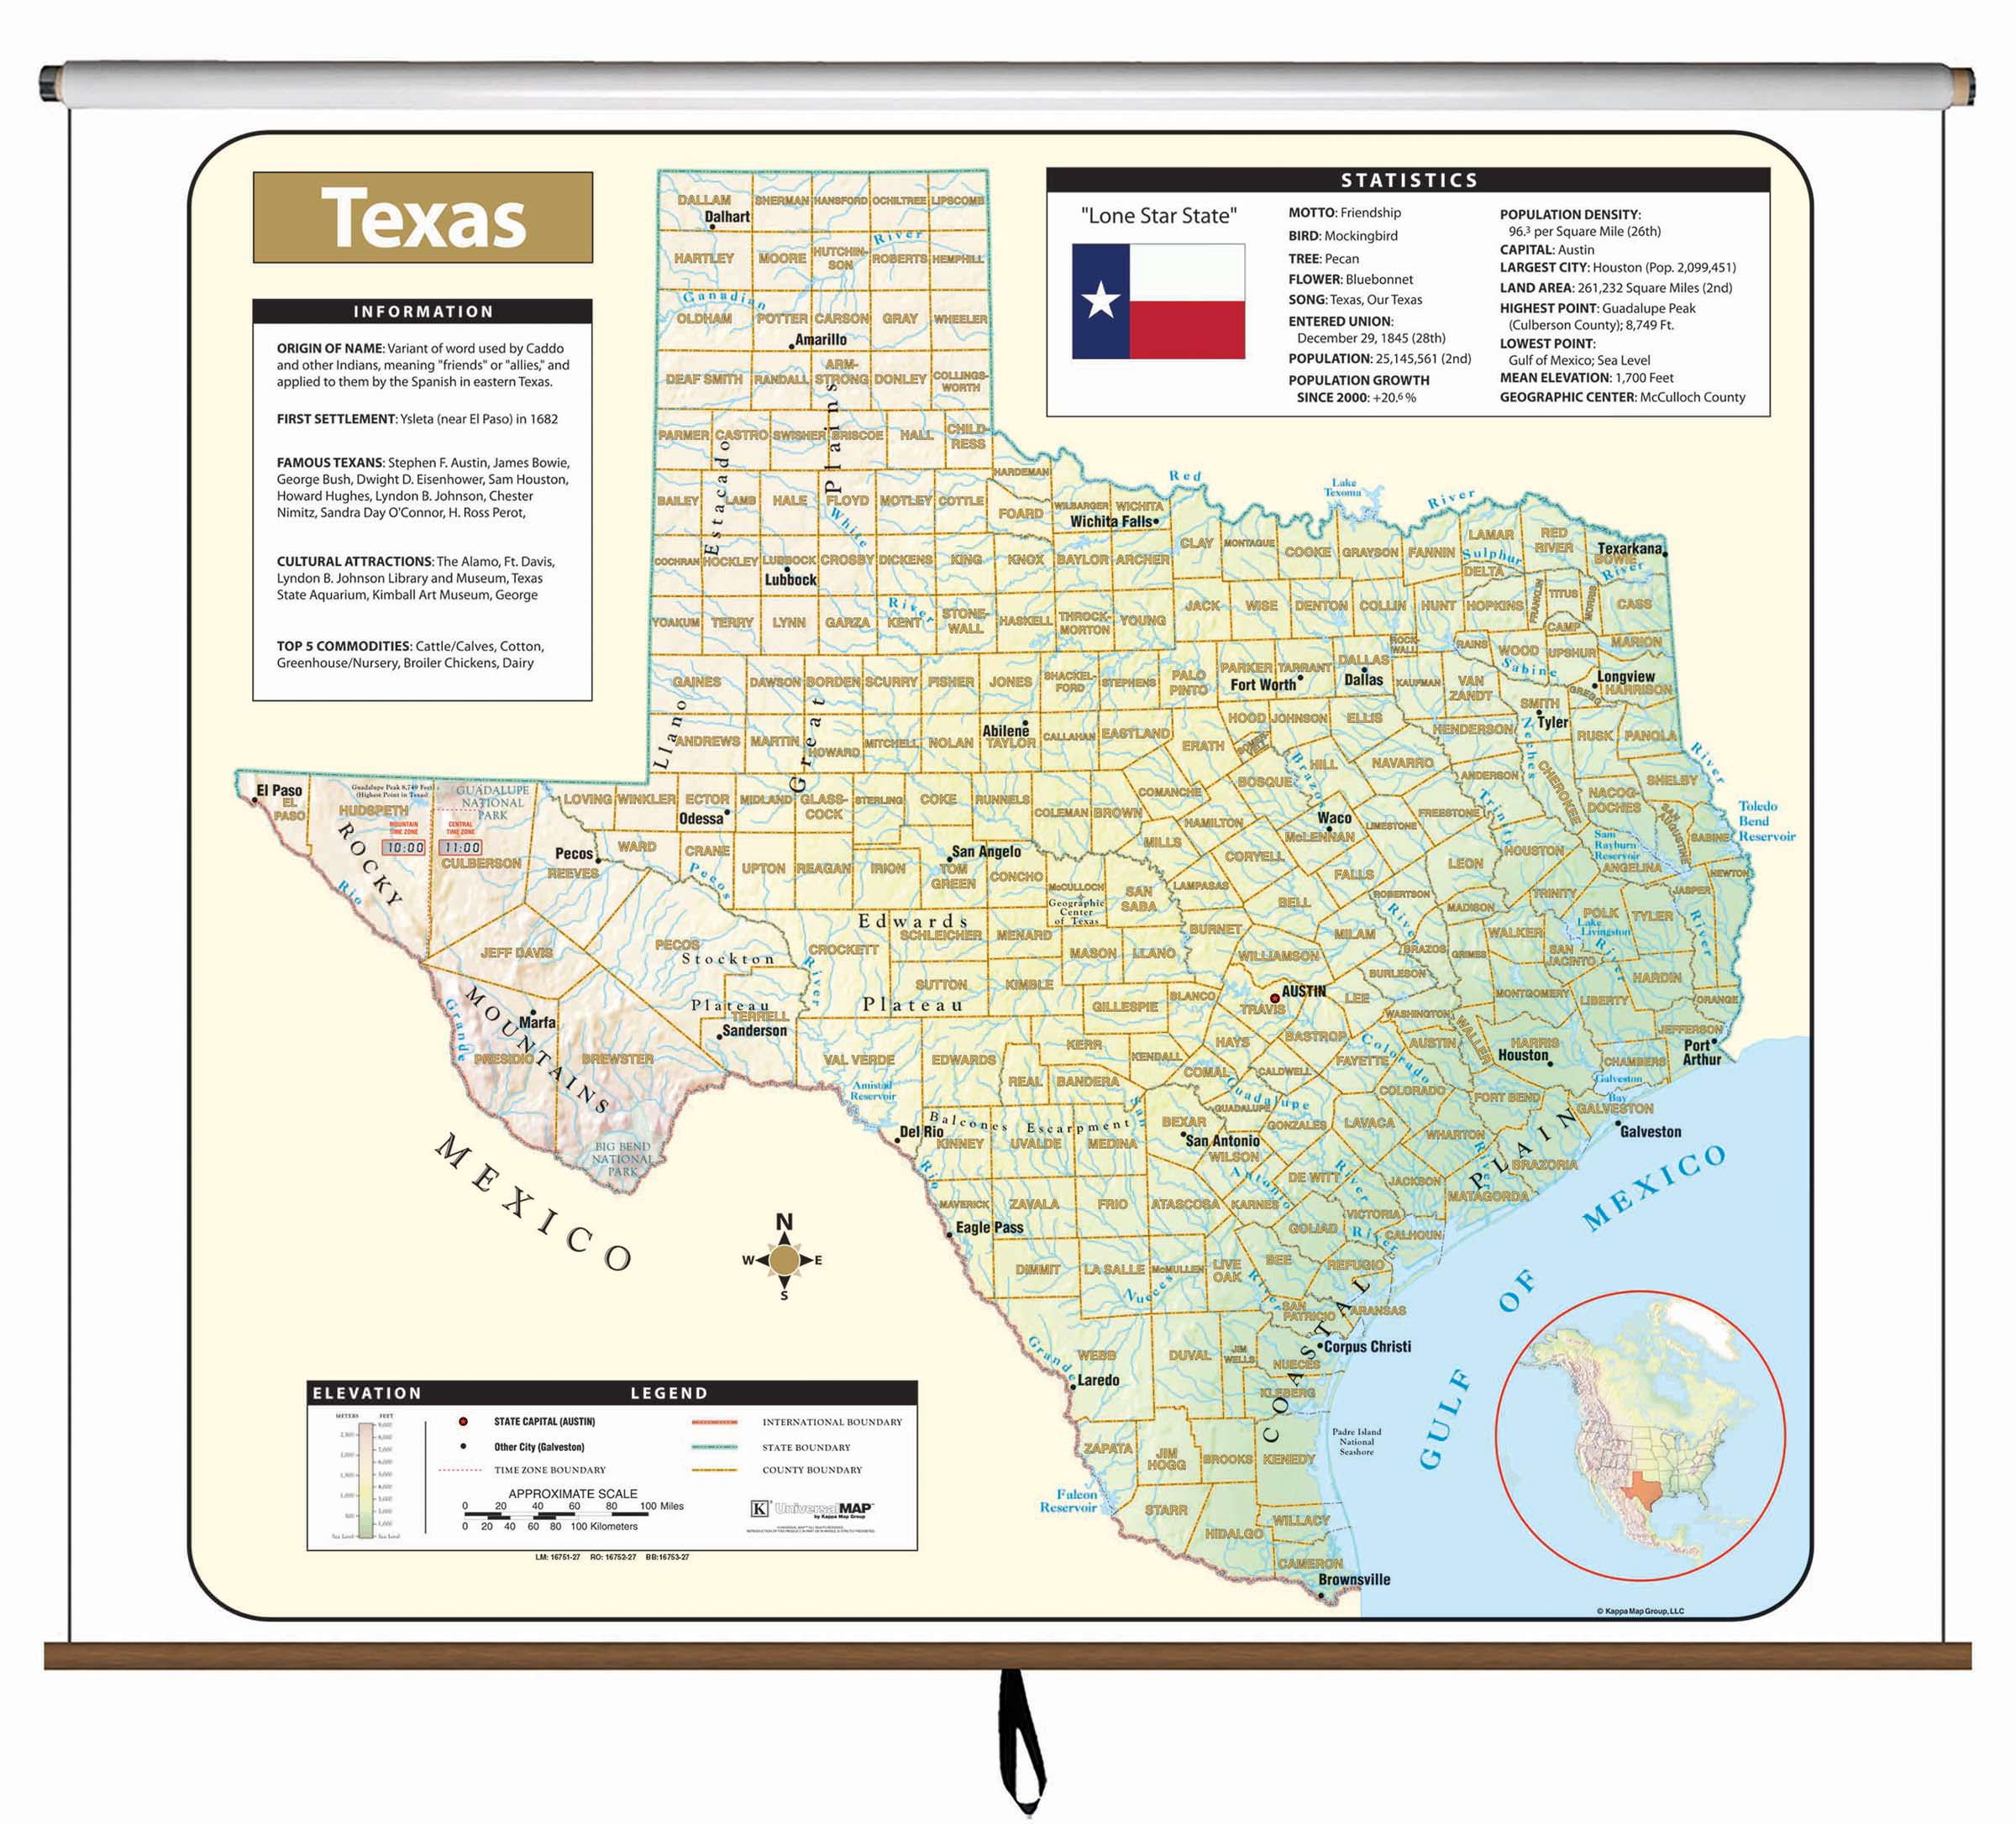 Texas Large Scale Shaded Relief Wall Map On Roller – Kappa Map Group - Large Texas Wall Map